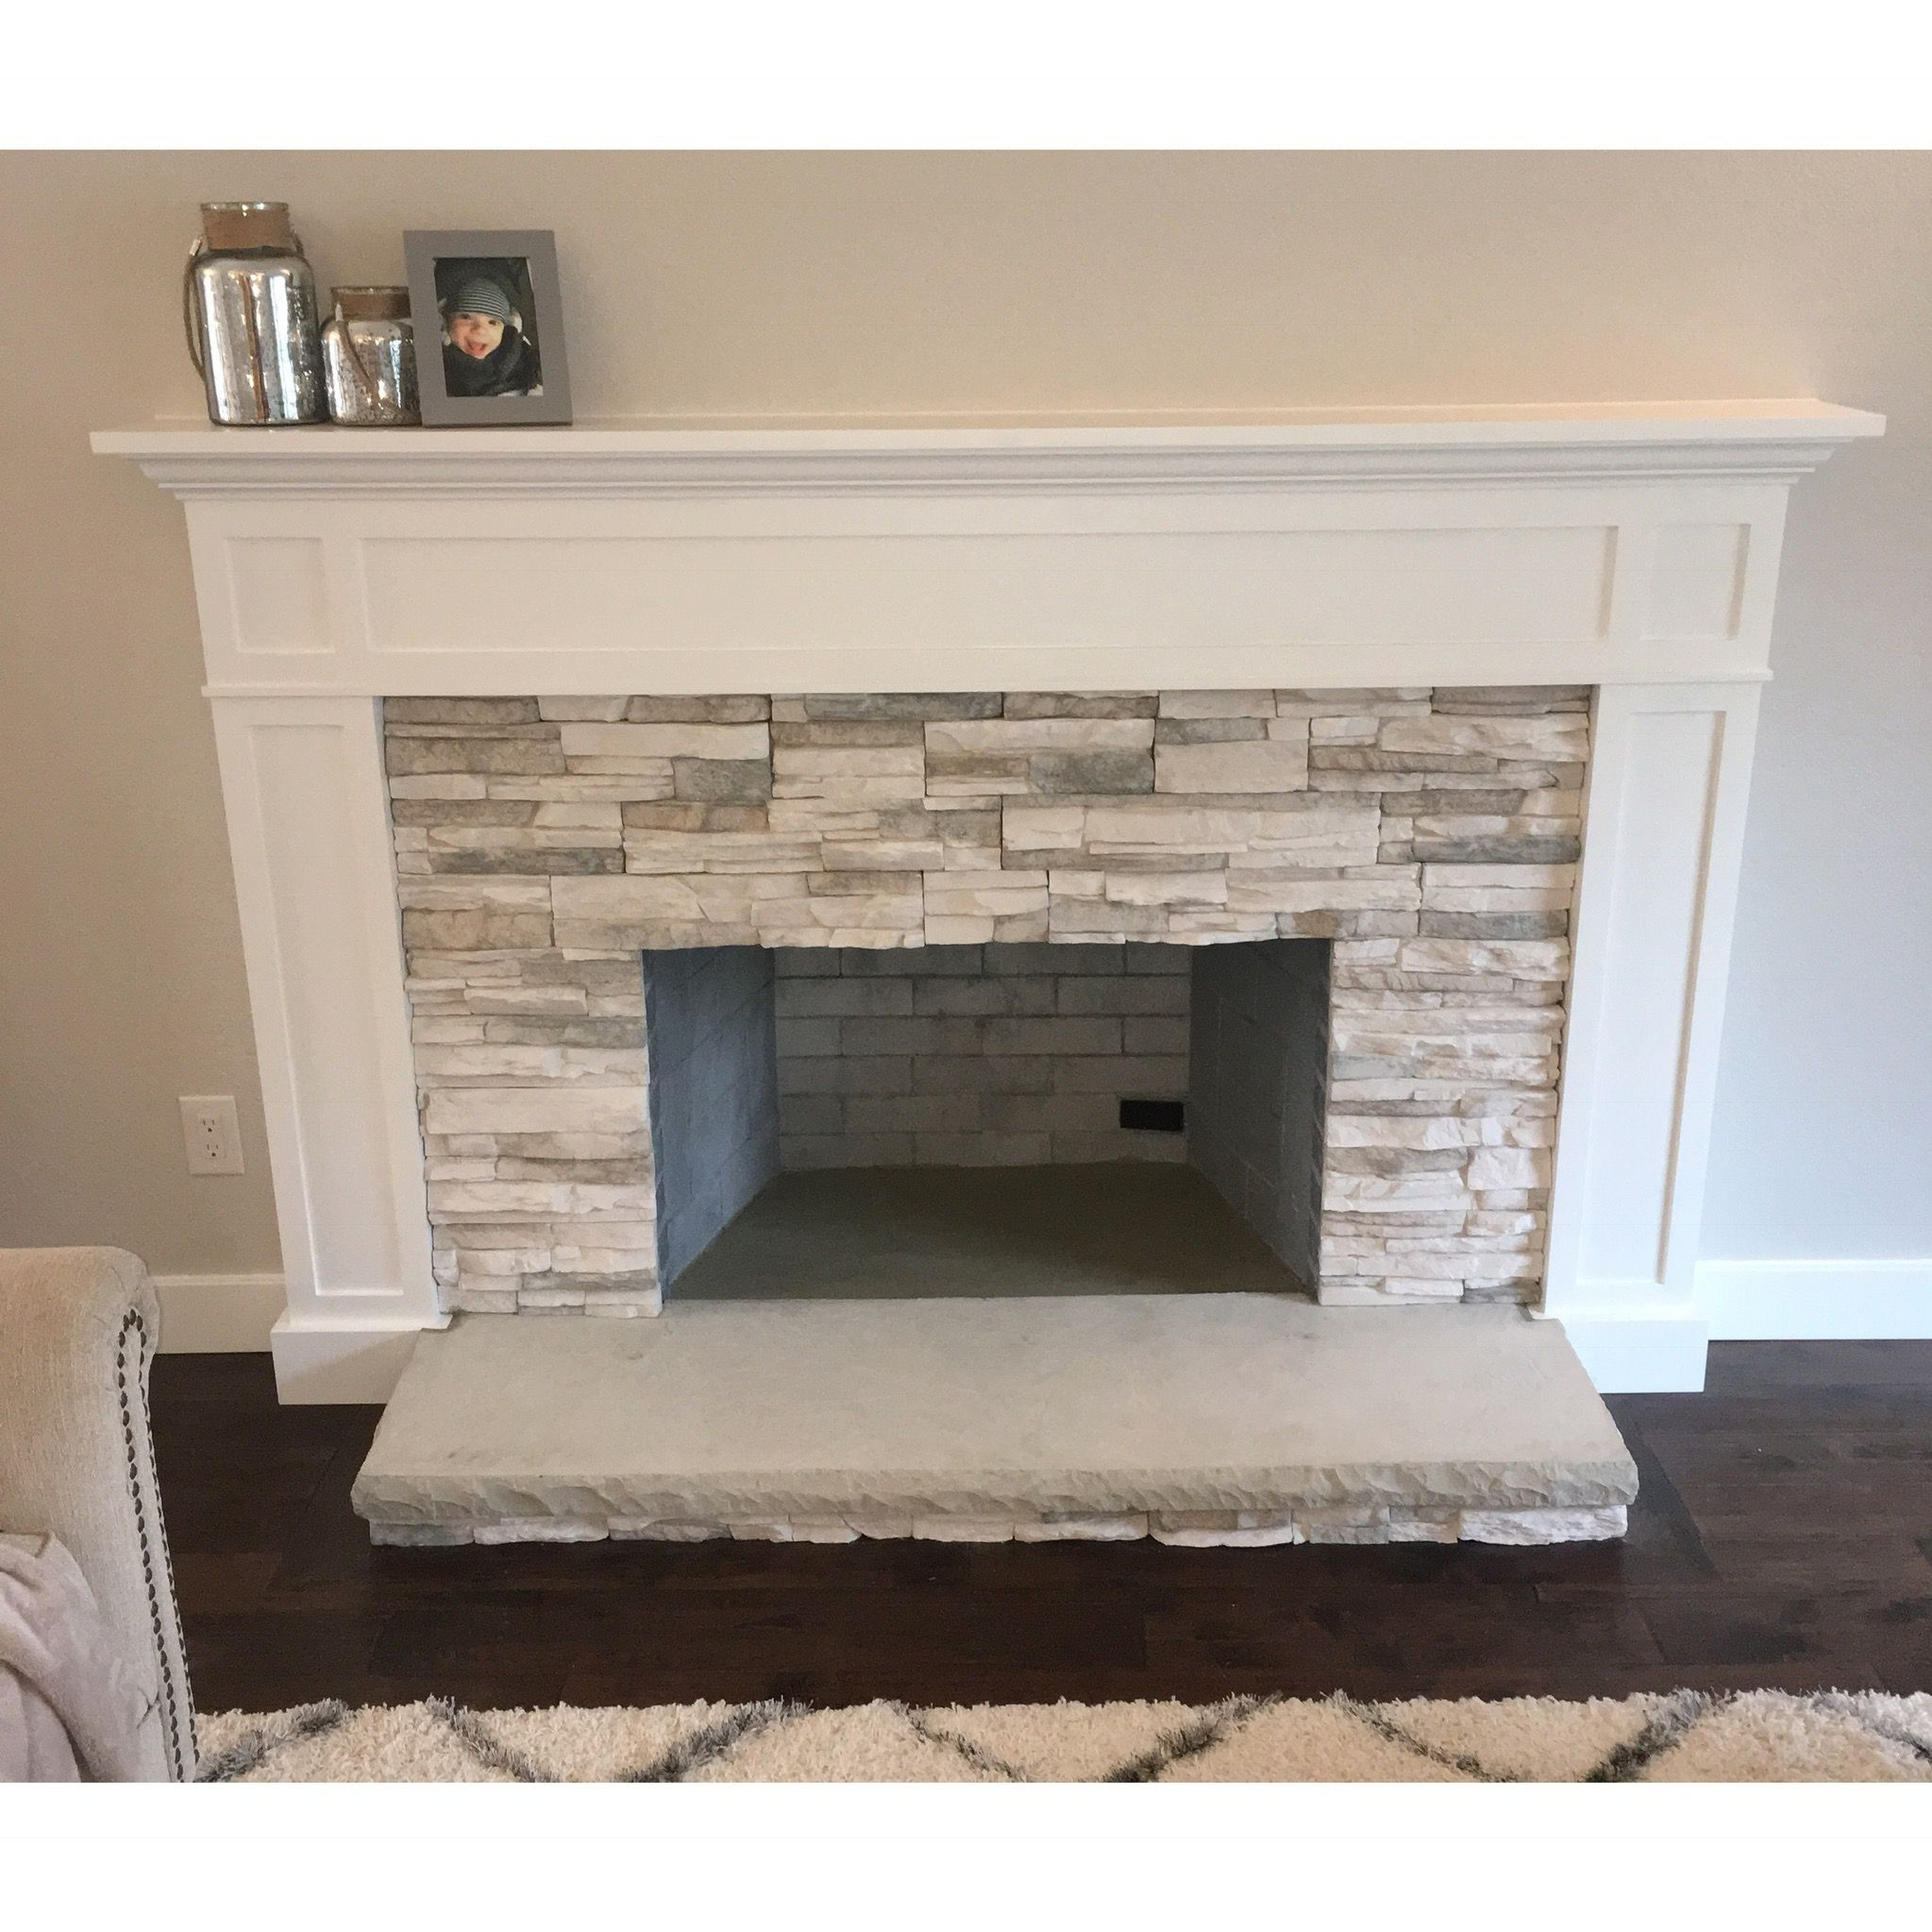 5 clear tips and tricks gas fireplace update craftsman fireplace rh pinterest com